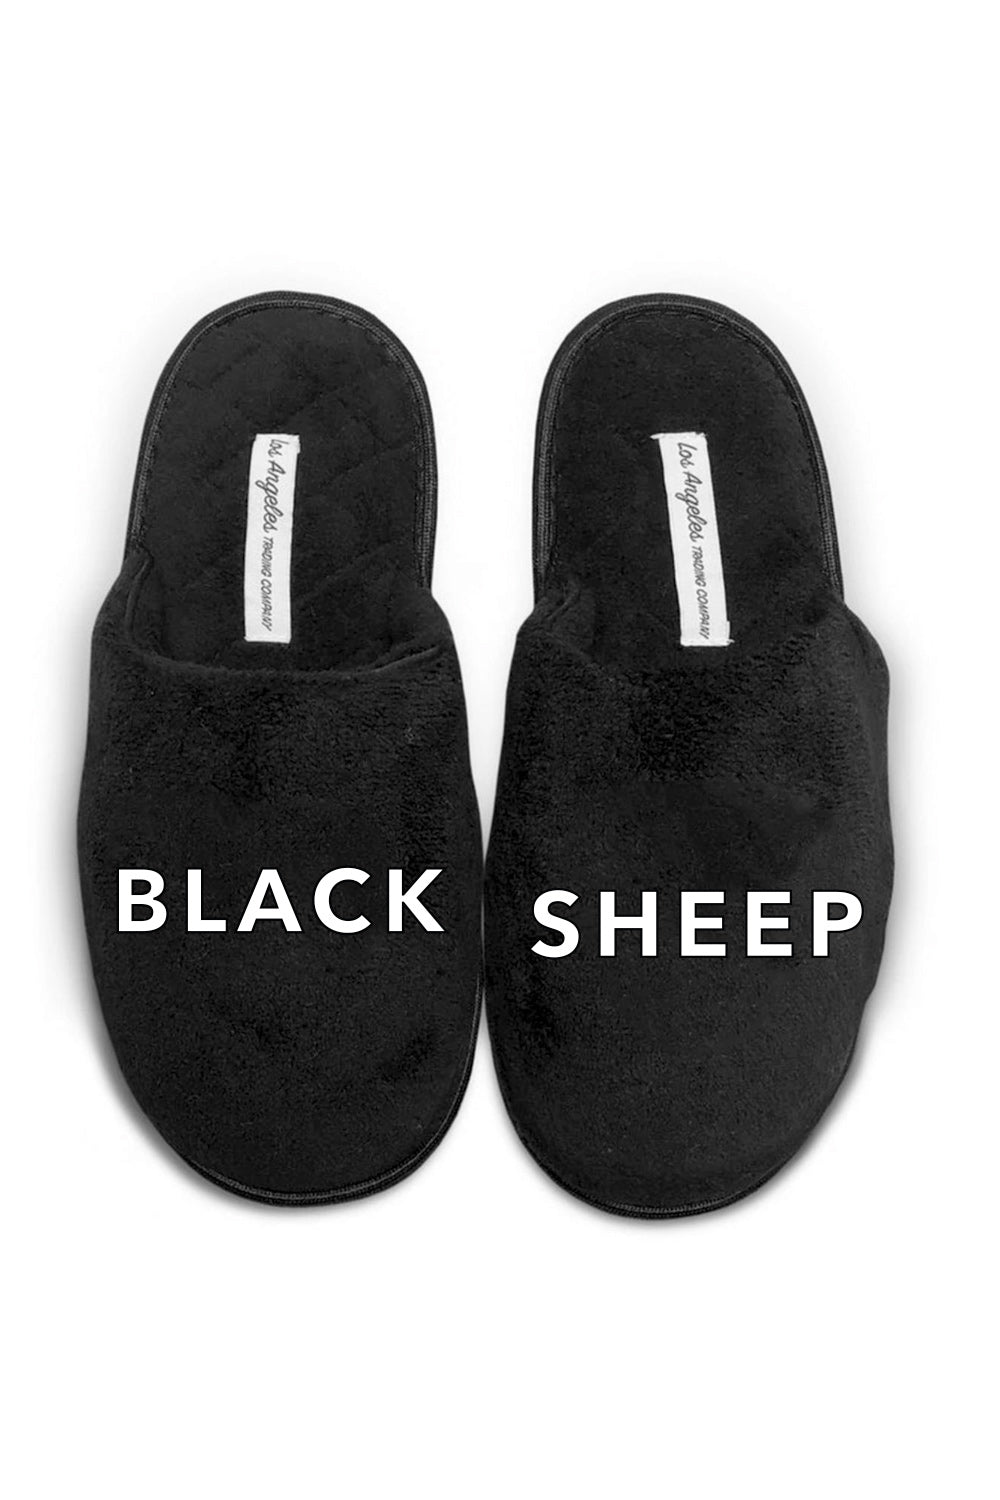 UNISEX SLIPPERS - Black Sheep